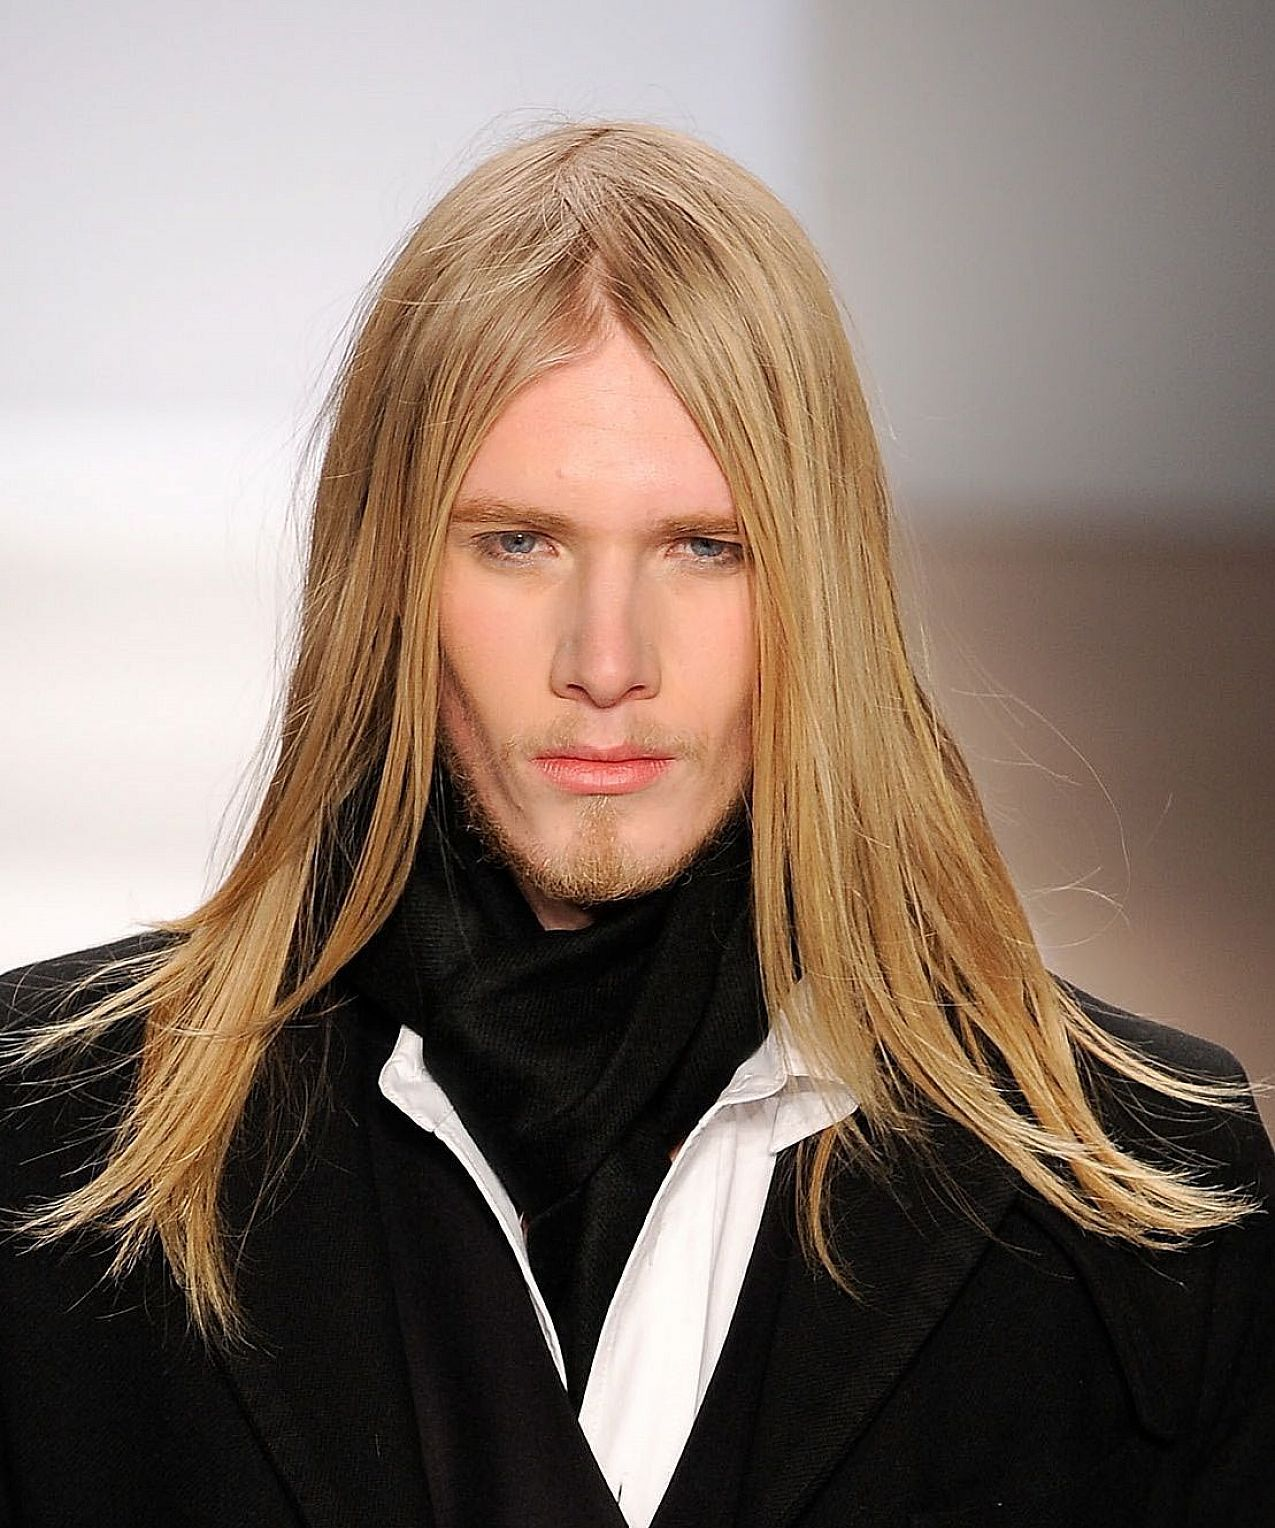 The Best Long Hairstyle For Men 2015 Long Hair Styles Men Long Hair Styles Men S Long Hairstyles